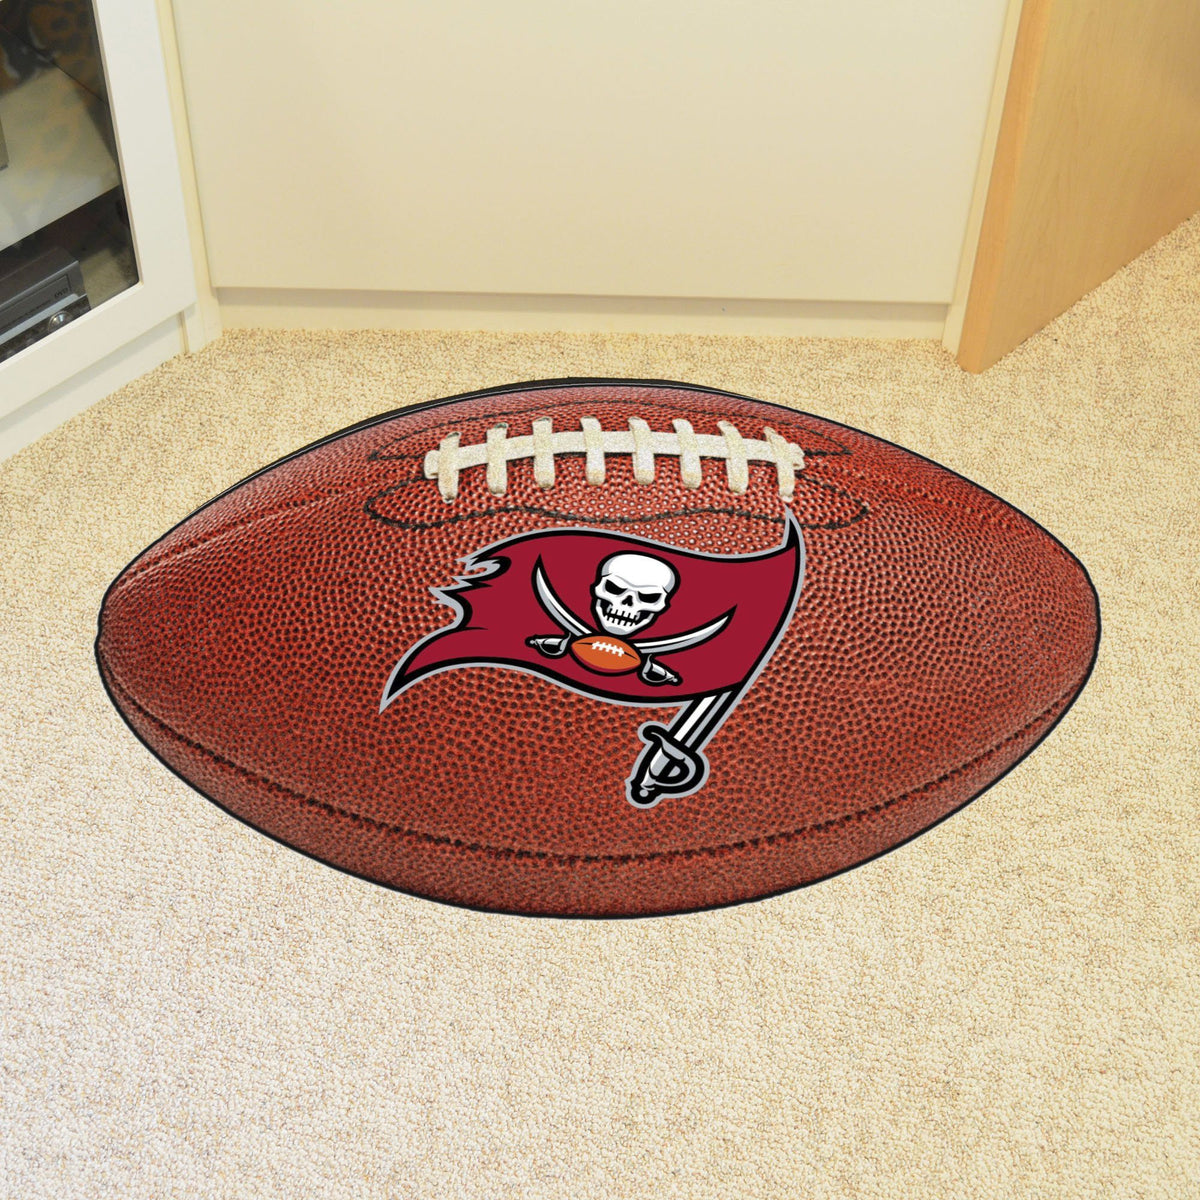 NFL - Football Mat NFL Mats, Custom Shape Rugs, Football Mat, NFL, Home Fan Mats Tampa Bay Buccaneers